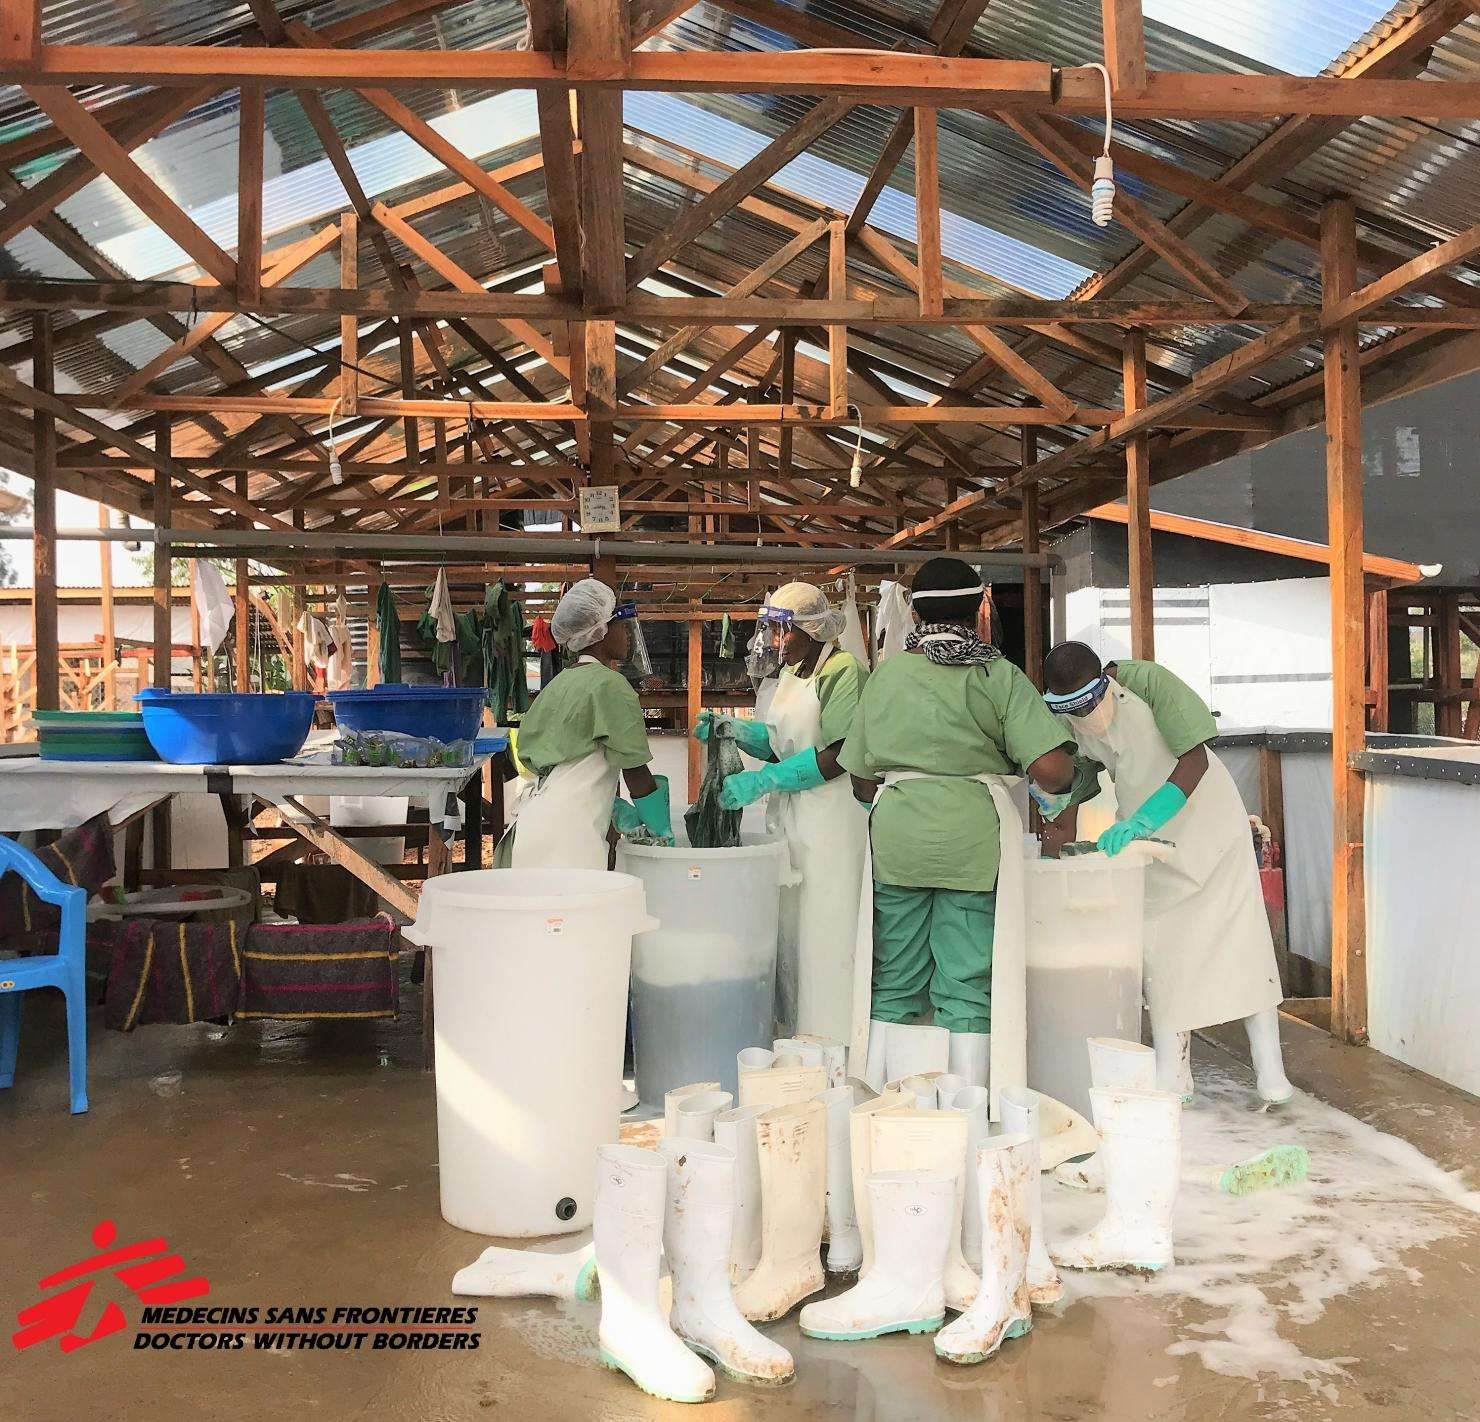 Opened on 04/01/19, this treatment center responds to the outbreak of new Ebola cases in Katwa. Located in the town of Butembo, Katwa Health Zone covers the western part of this urban area which has about 1 million inhabitants.